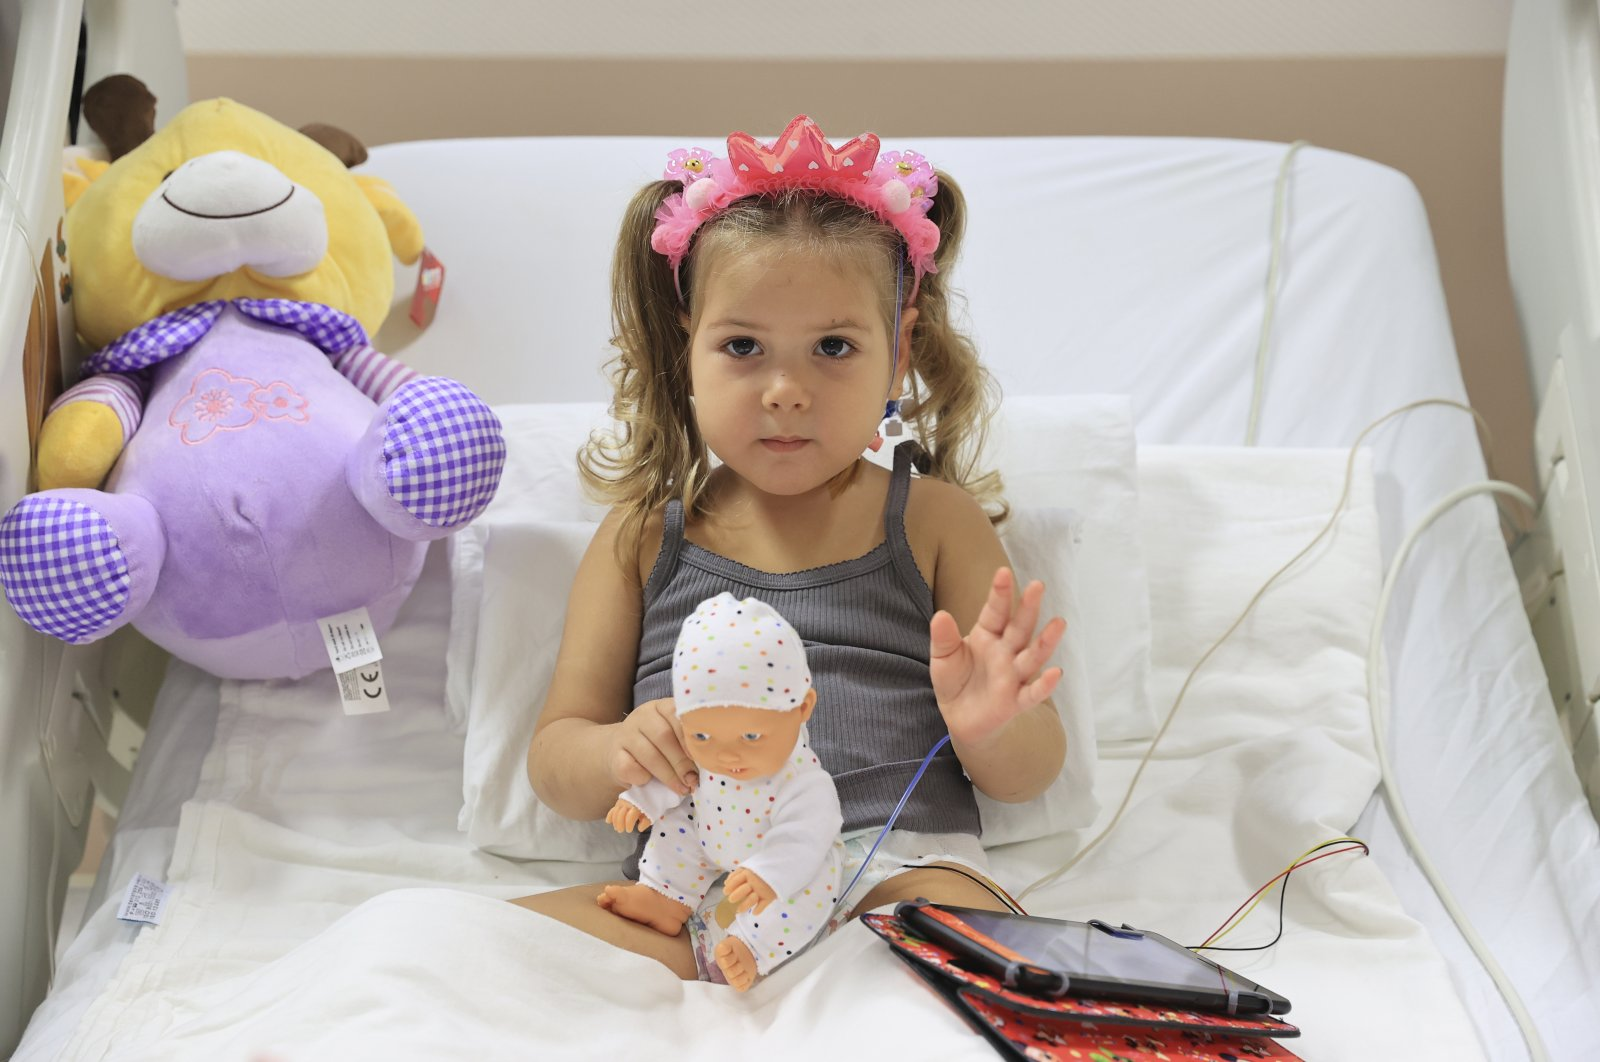 Three-year-old girl Ayda Gezgin sits in her bed in her hospital room after being rescued from the rubble following a 6.6 magnitude earthquake, in Izmir, Turkey, Nov. 5, 2020. (Turkey Health Ministry via AP)